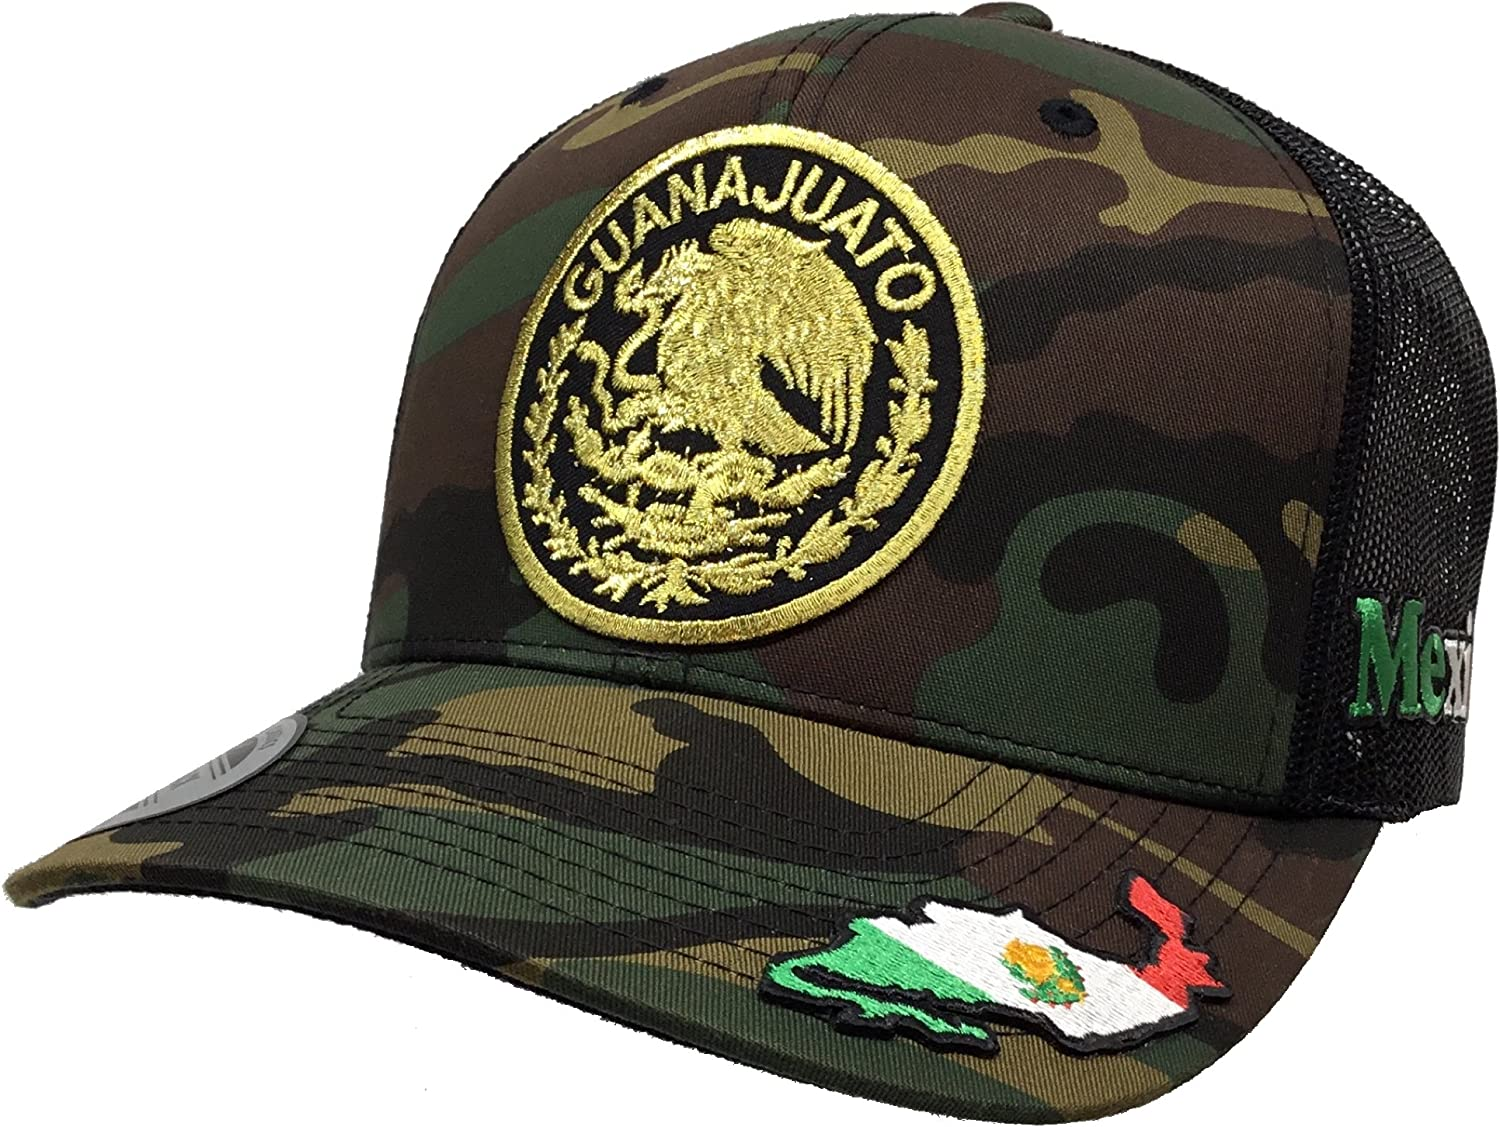 GUANAJUATO LOGO FEDERAL MEXICO HAT MESH TRUCKER BLACK SNAP BACK